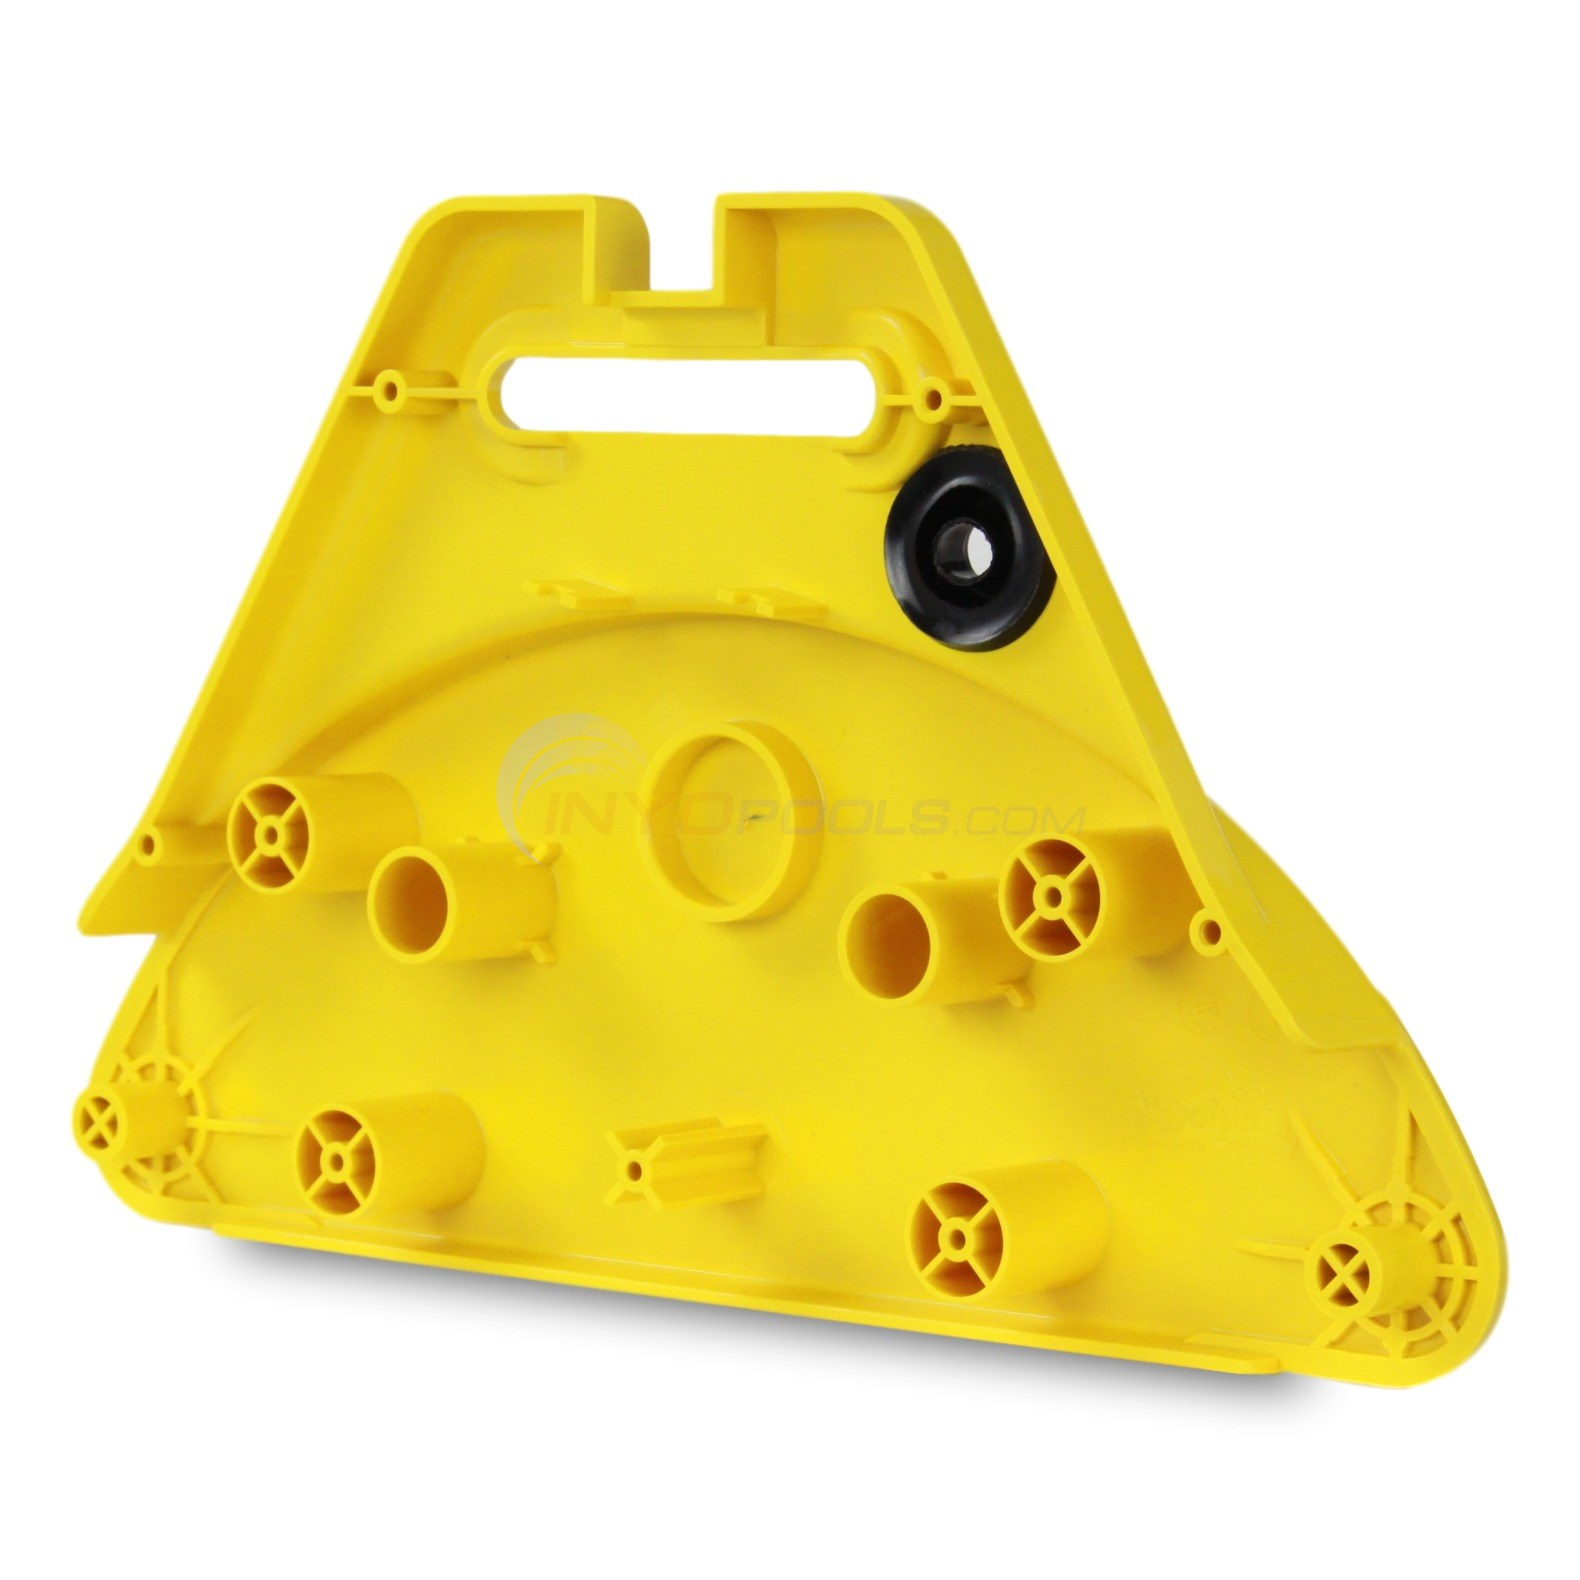 Maytronics Side Plate W.c.f.-yellow (9995062)